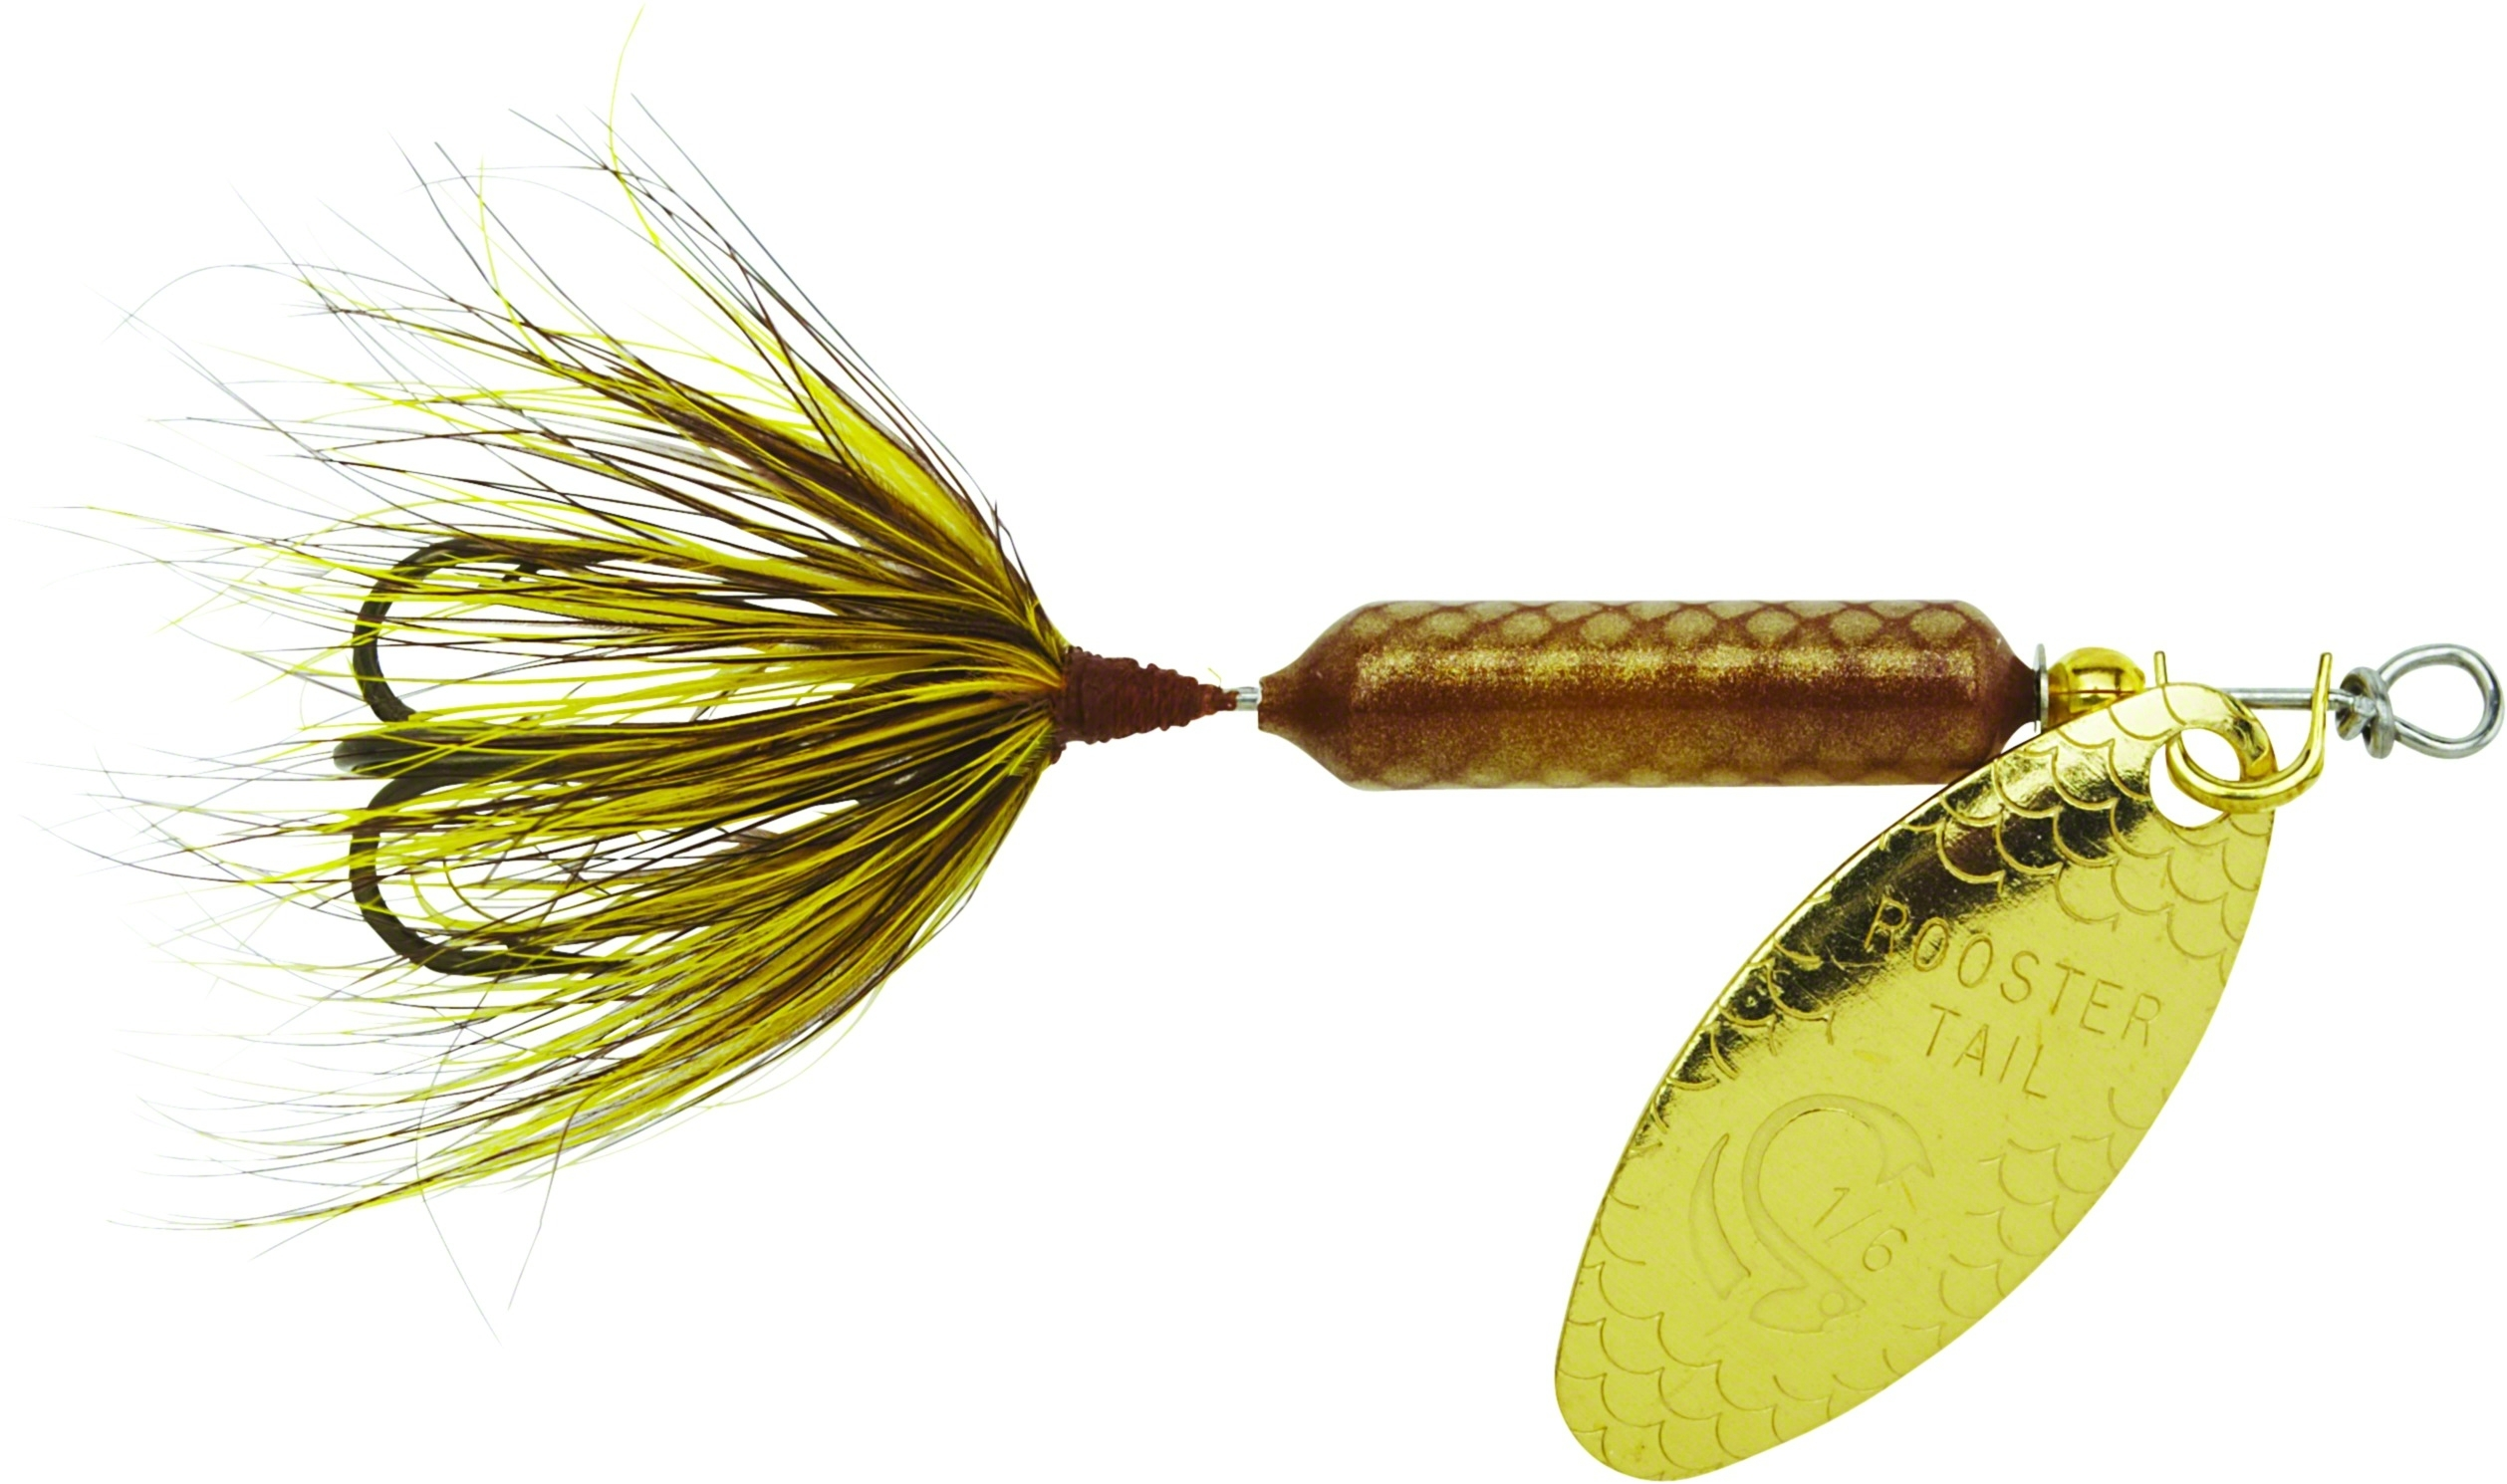 Wordens 208 gh rooster tail 1 8oz grasshopper fishing lure for Rooster tail fishing lure